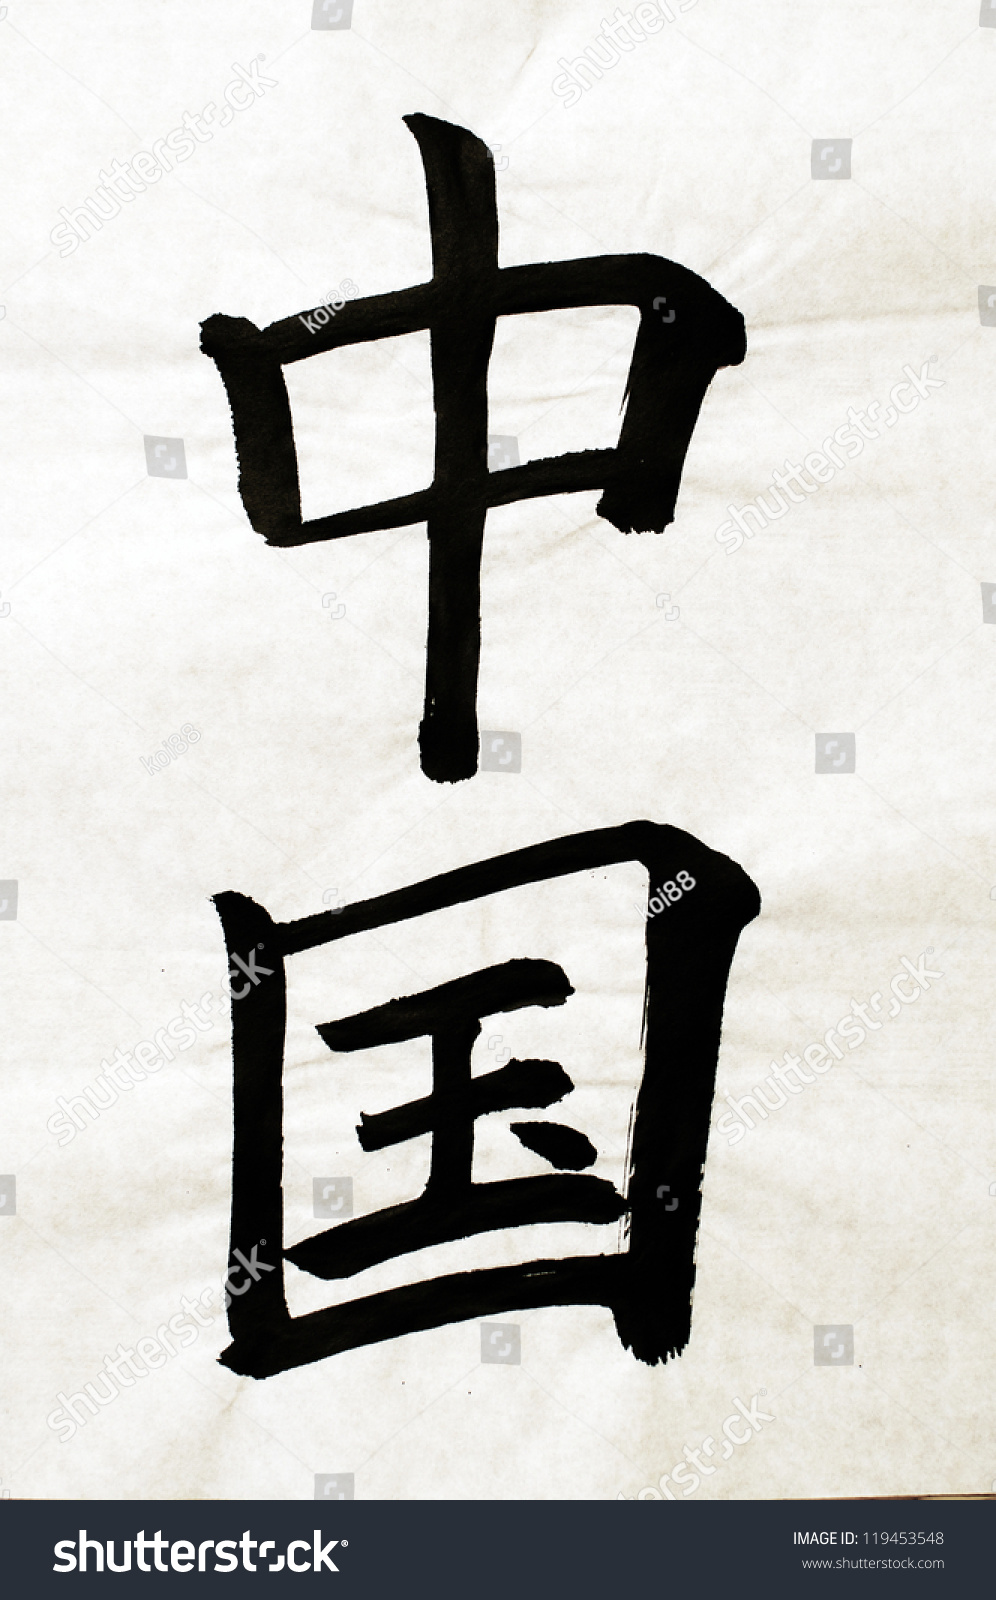 the word china in chinese writing Learn how to say china in mandarin chinese leave a comment below to suggest what words or phrases you would like to learn next.